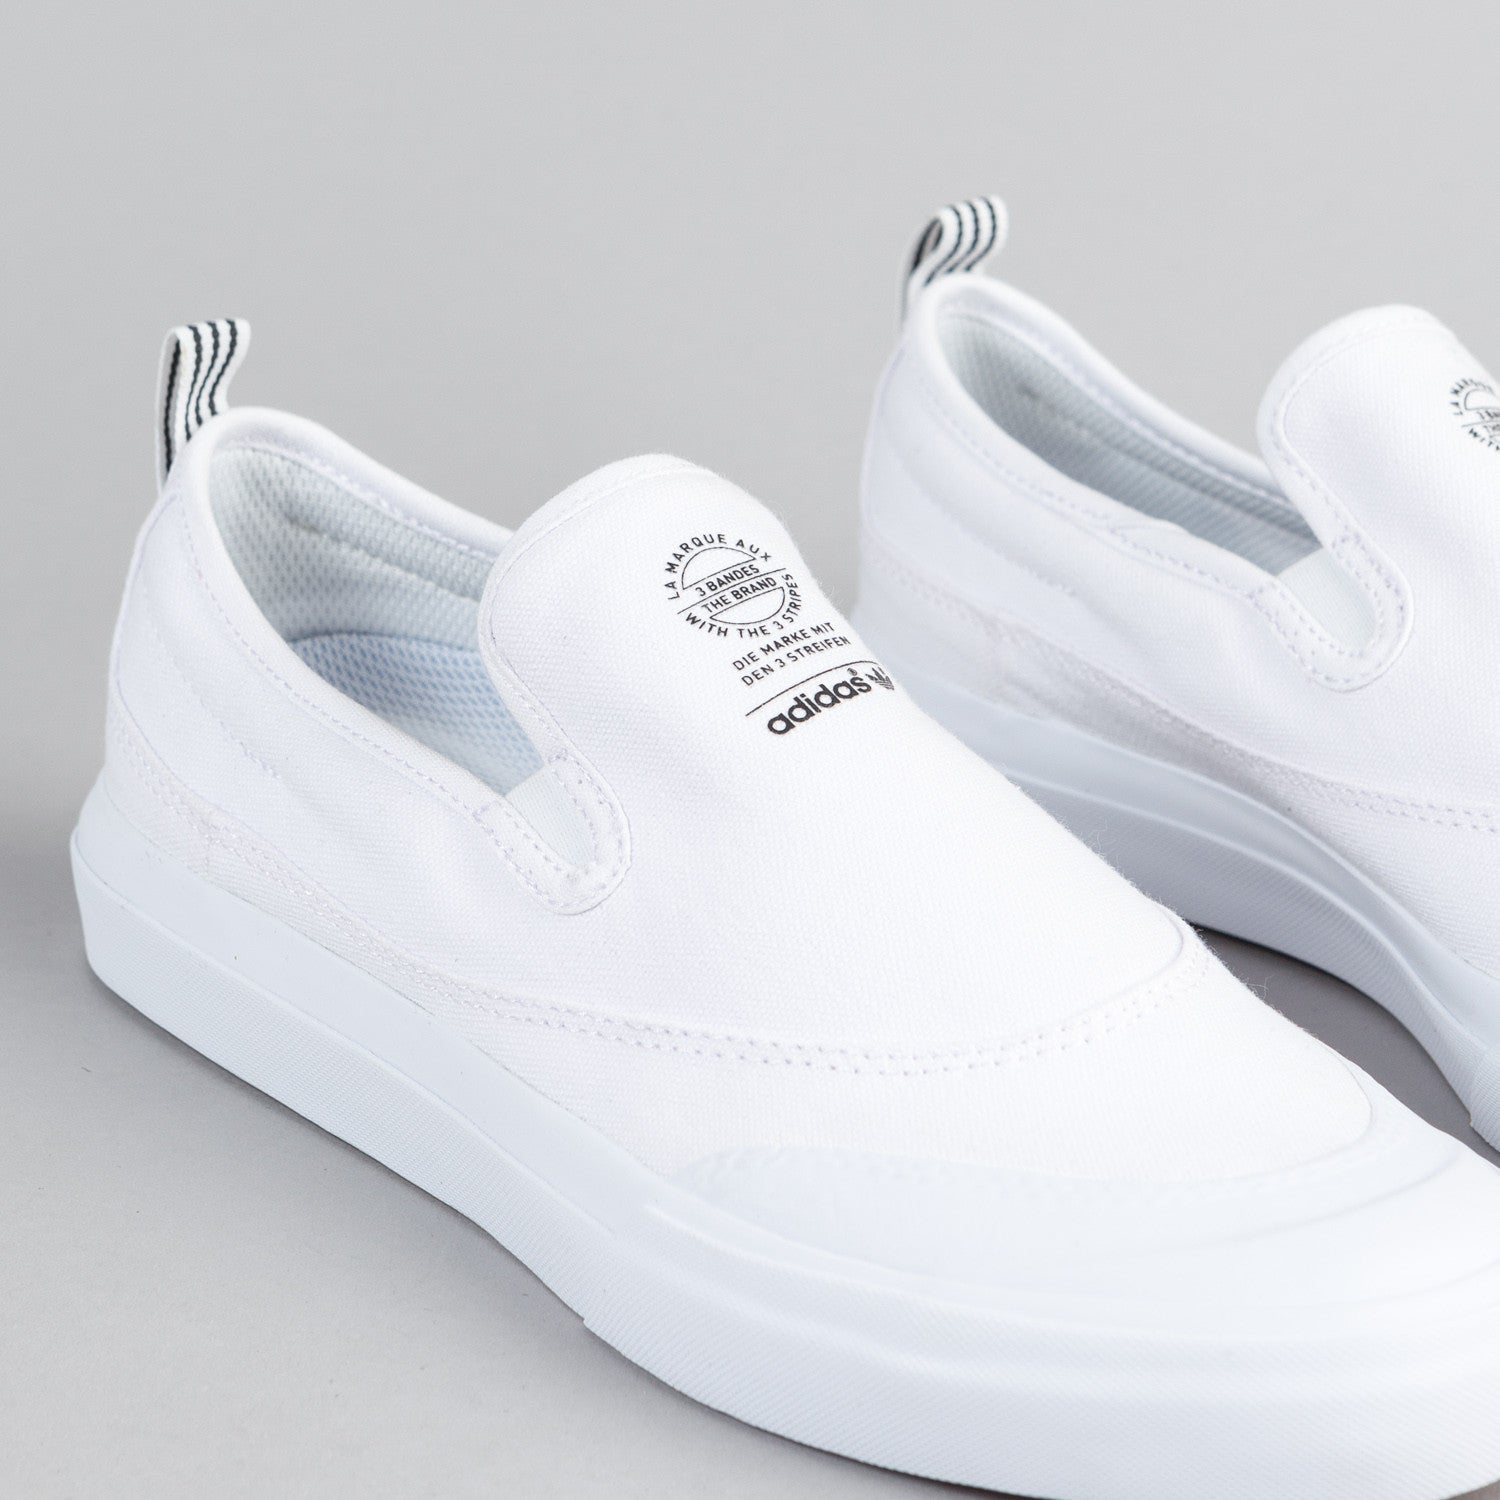 slip on adidas shoes Ametis Projects